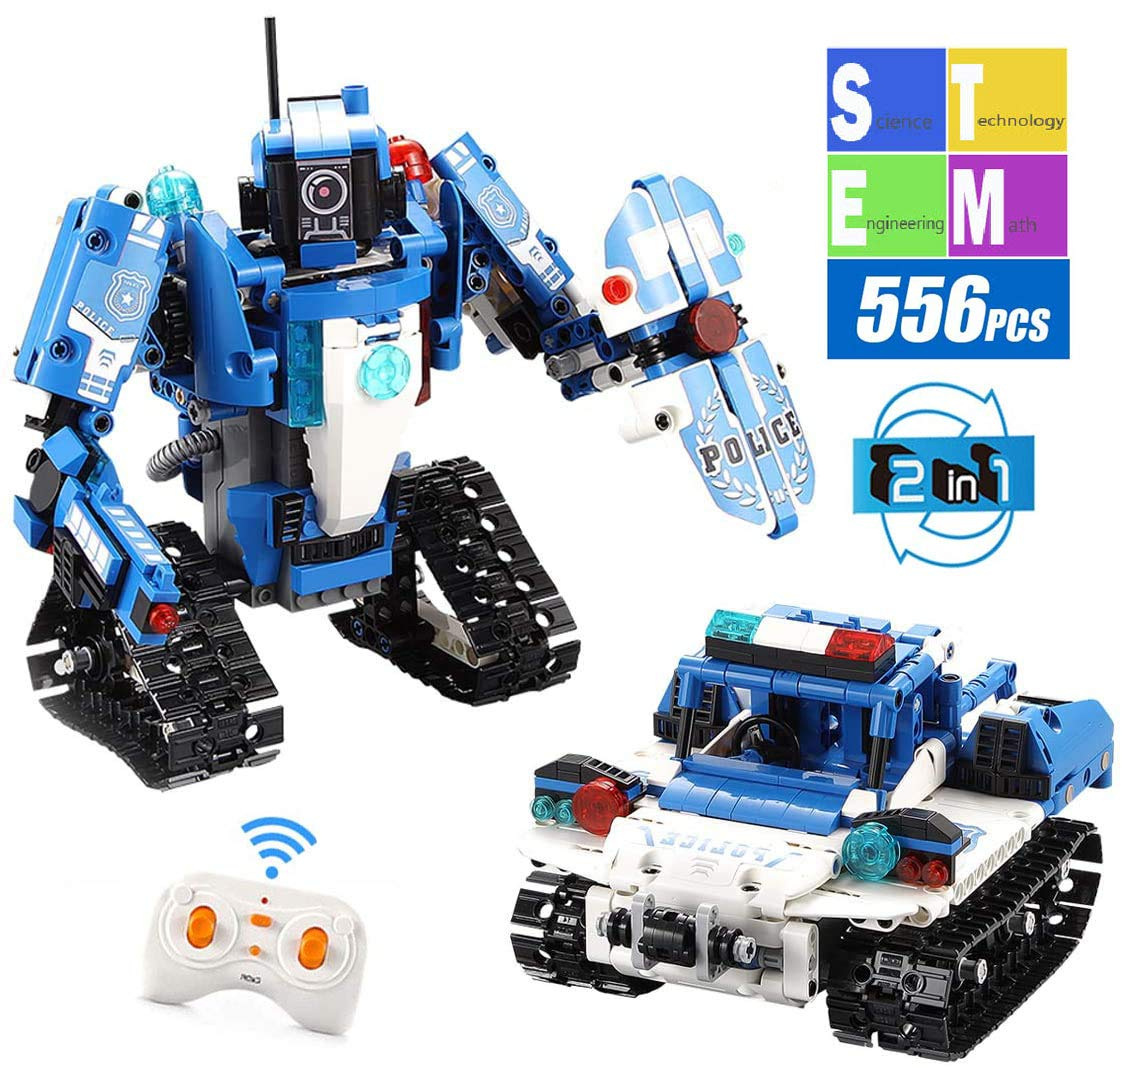 Mould King 2 in 1 Building Block Robot Policemen Toy with Remote Control Robot Engineering Science Education Mathematics Kit Robot Set Gift for 6 7 8 9 10 11 12 Years Old Boys Girls (556 Pieces)